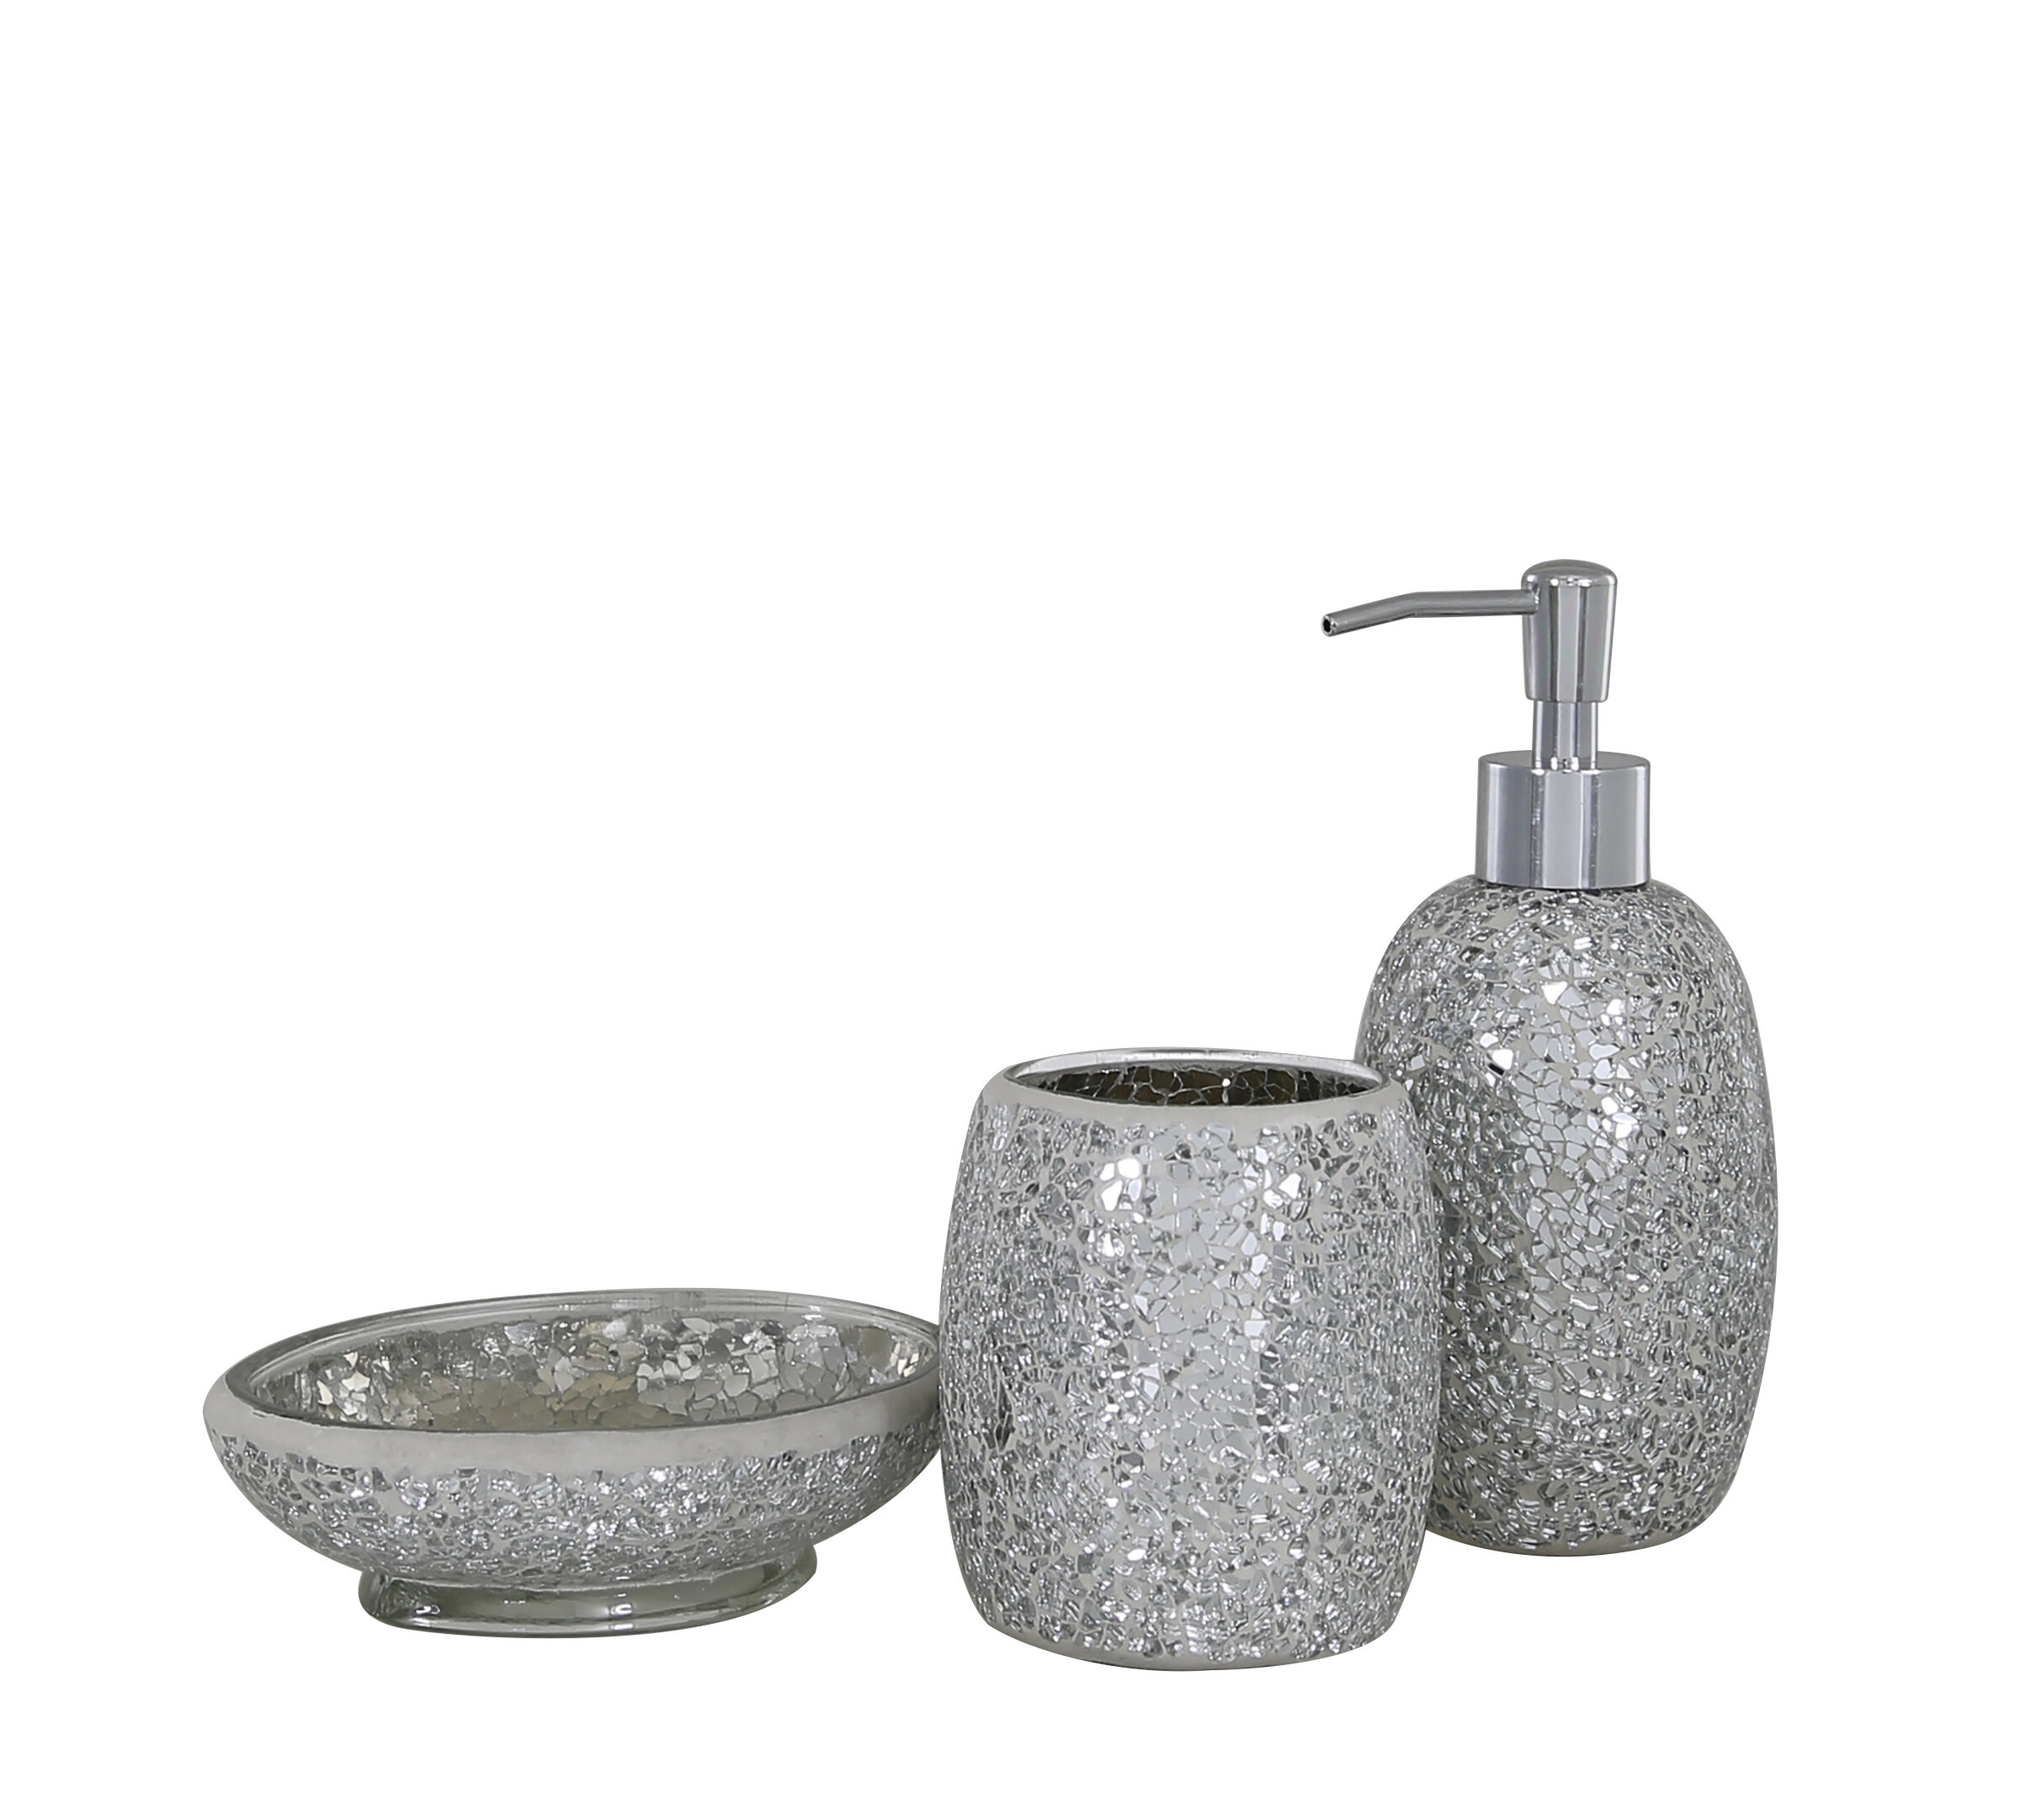 Belfry Bathroom Mosaic 3 Piece Accessories Set Reviews Wayfair Co Uk